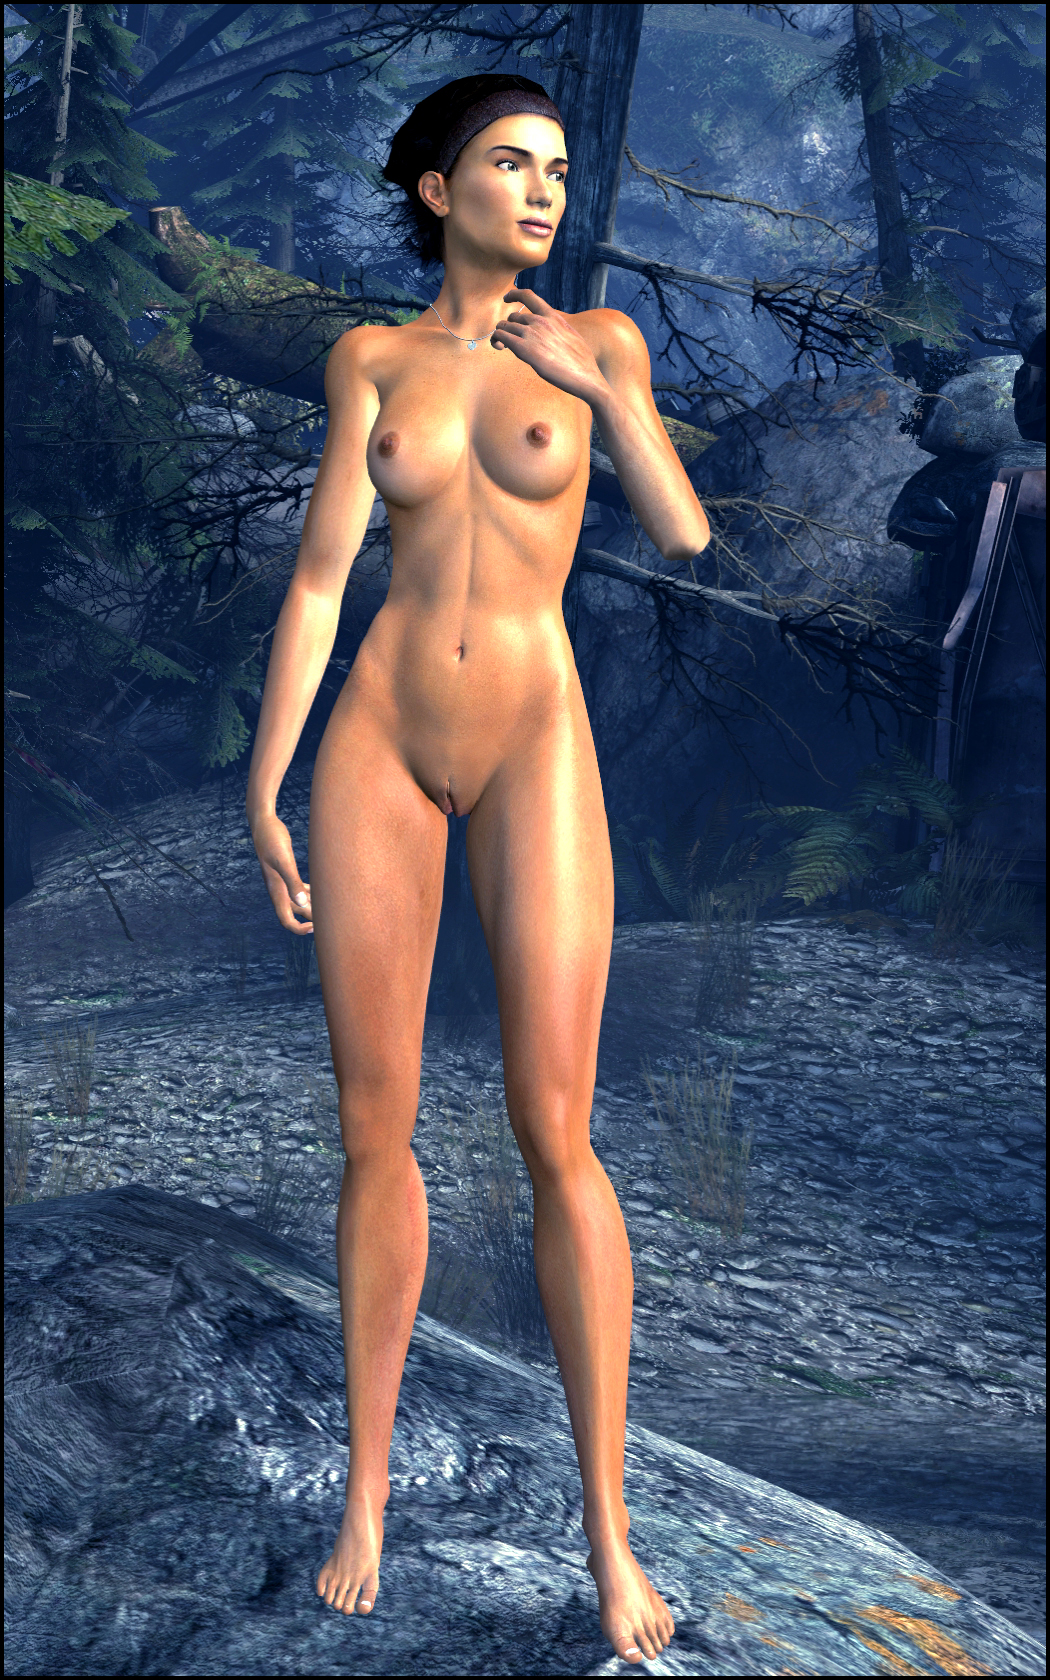 glorious female mod fallout nude 4 Dragon ball z porn android 18